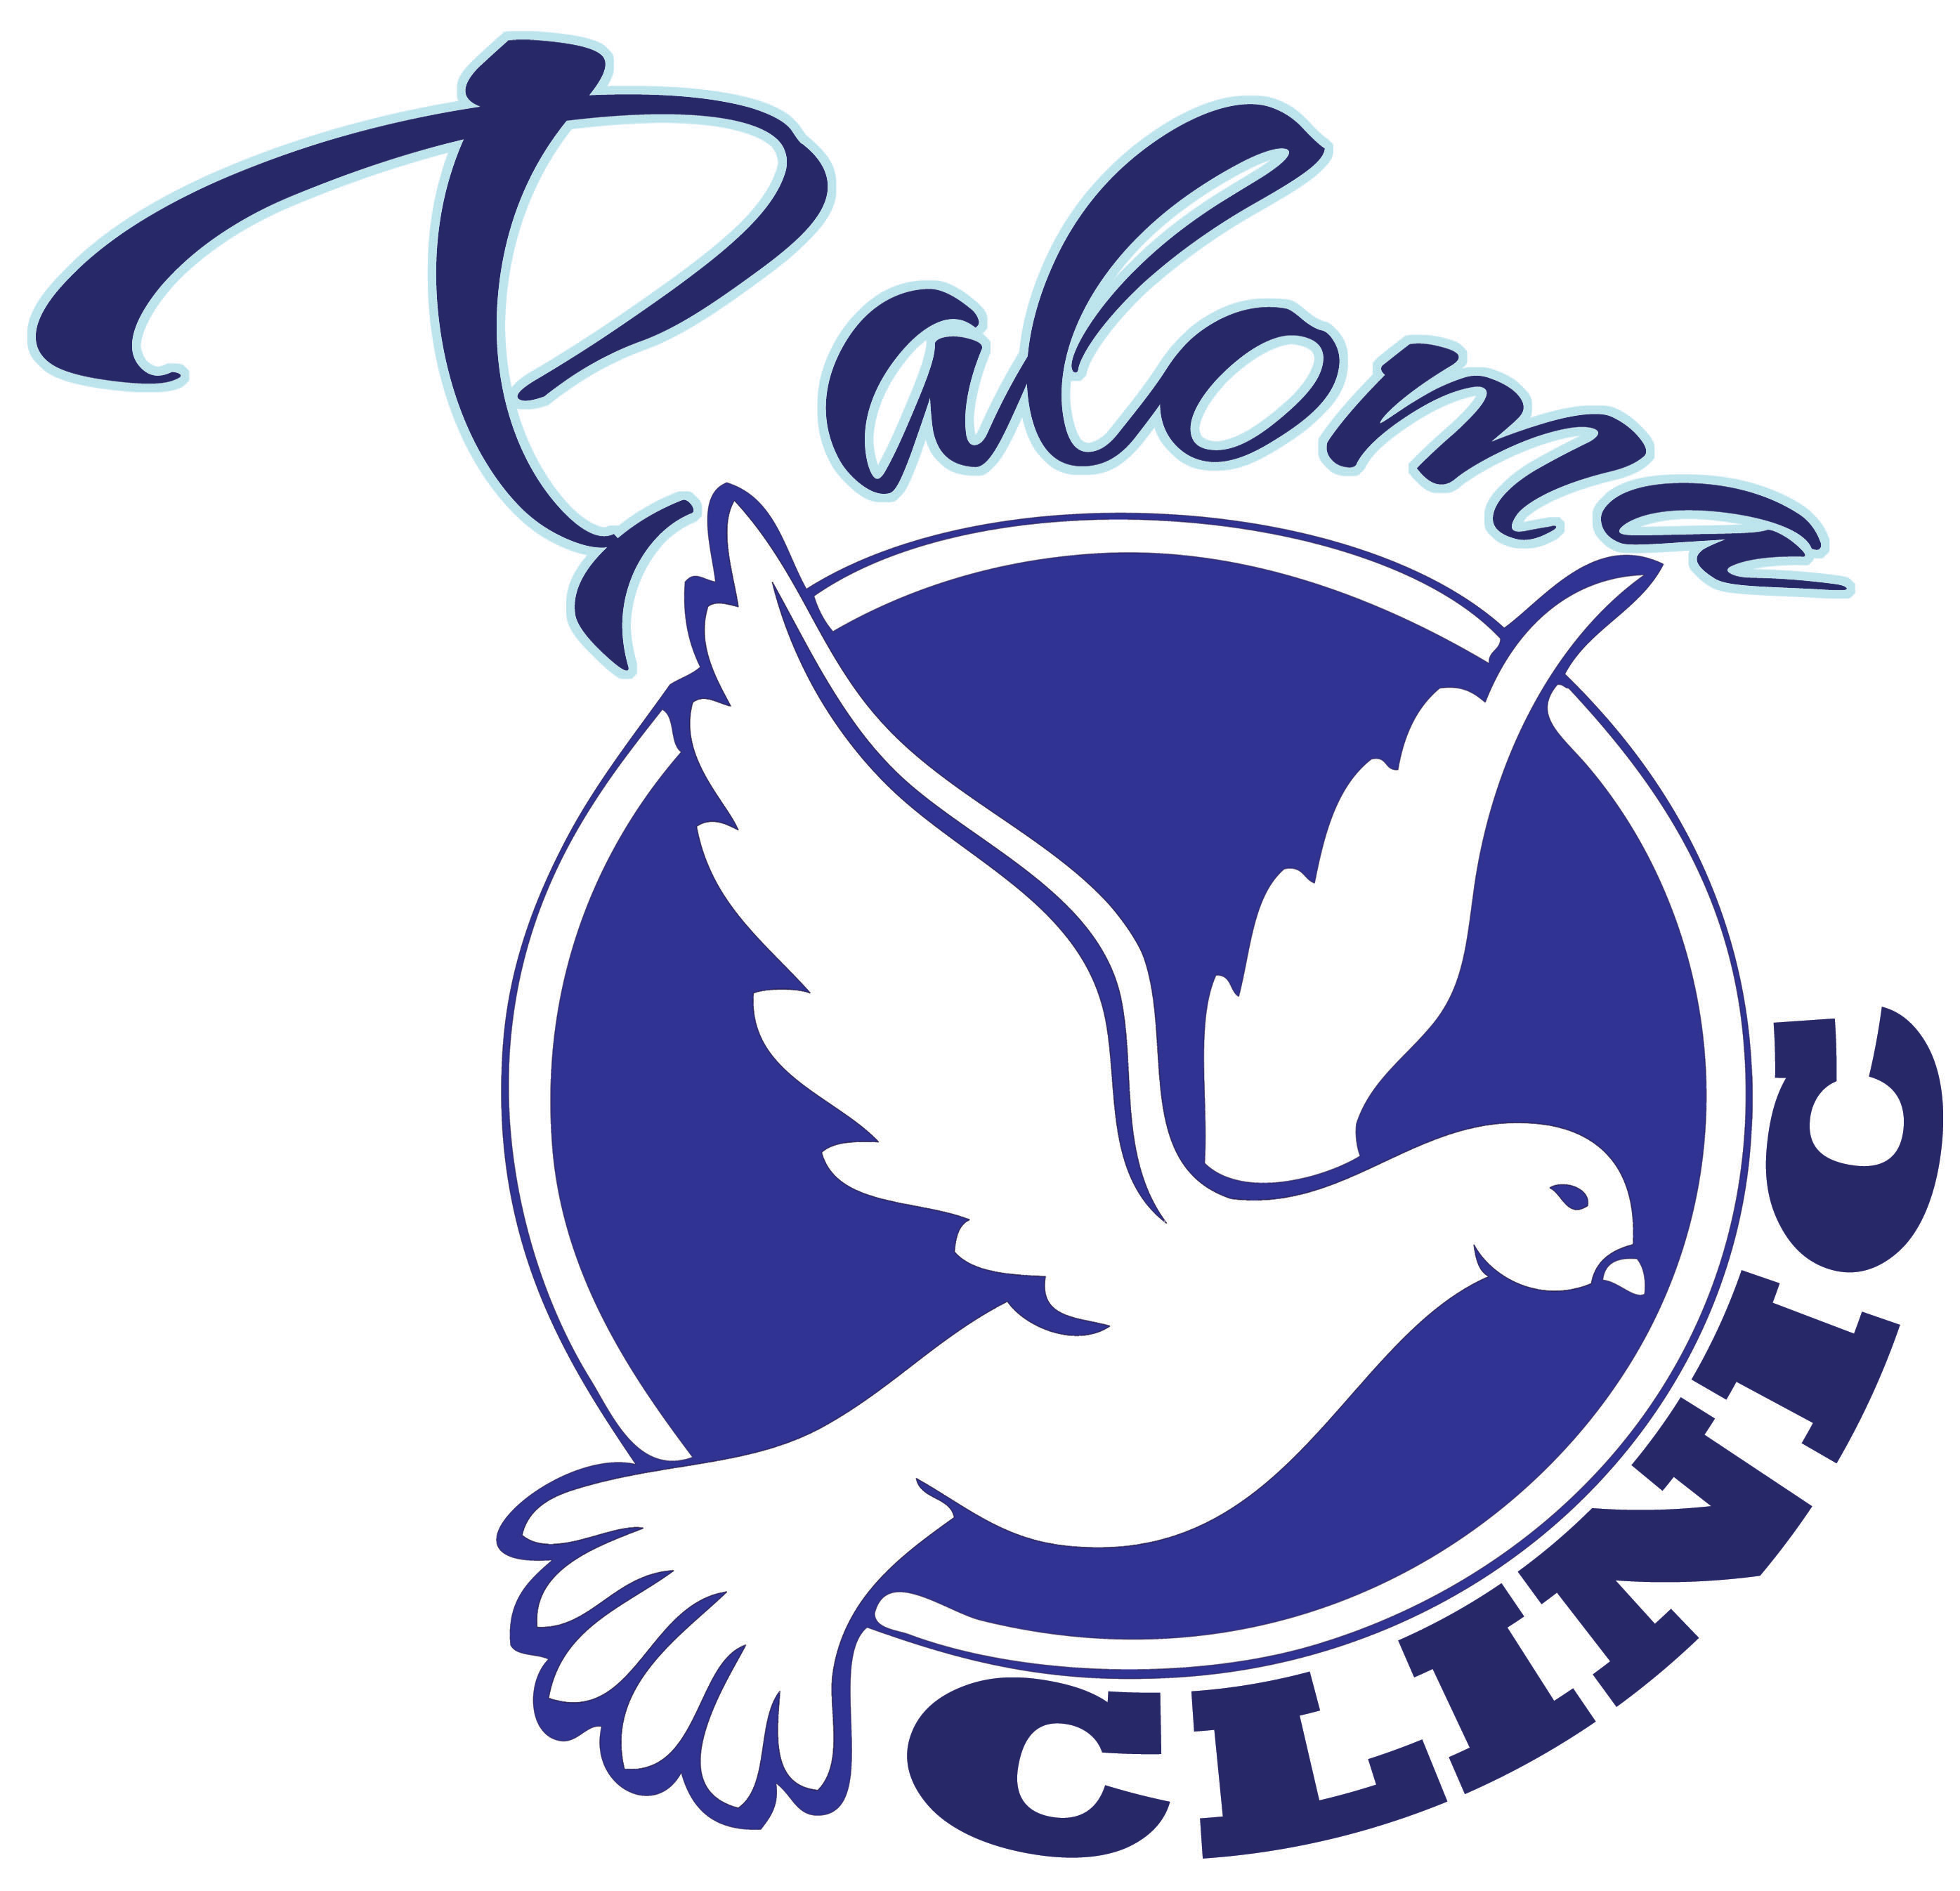 Paloma Women's Clinic & Medical Center